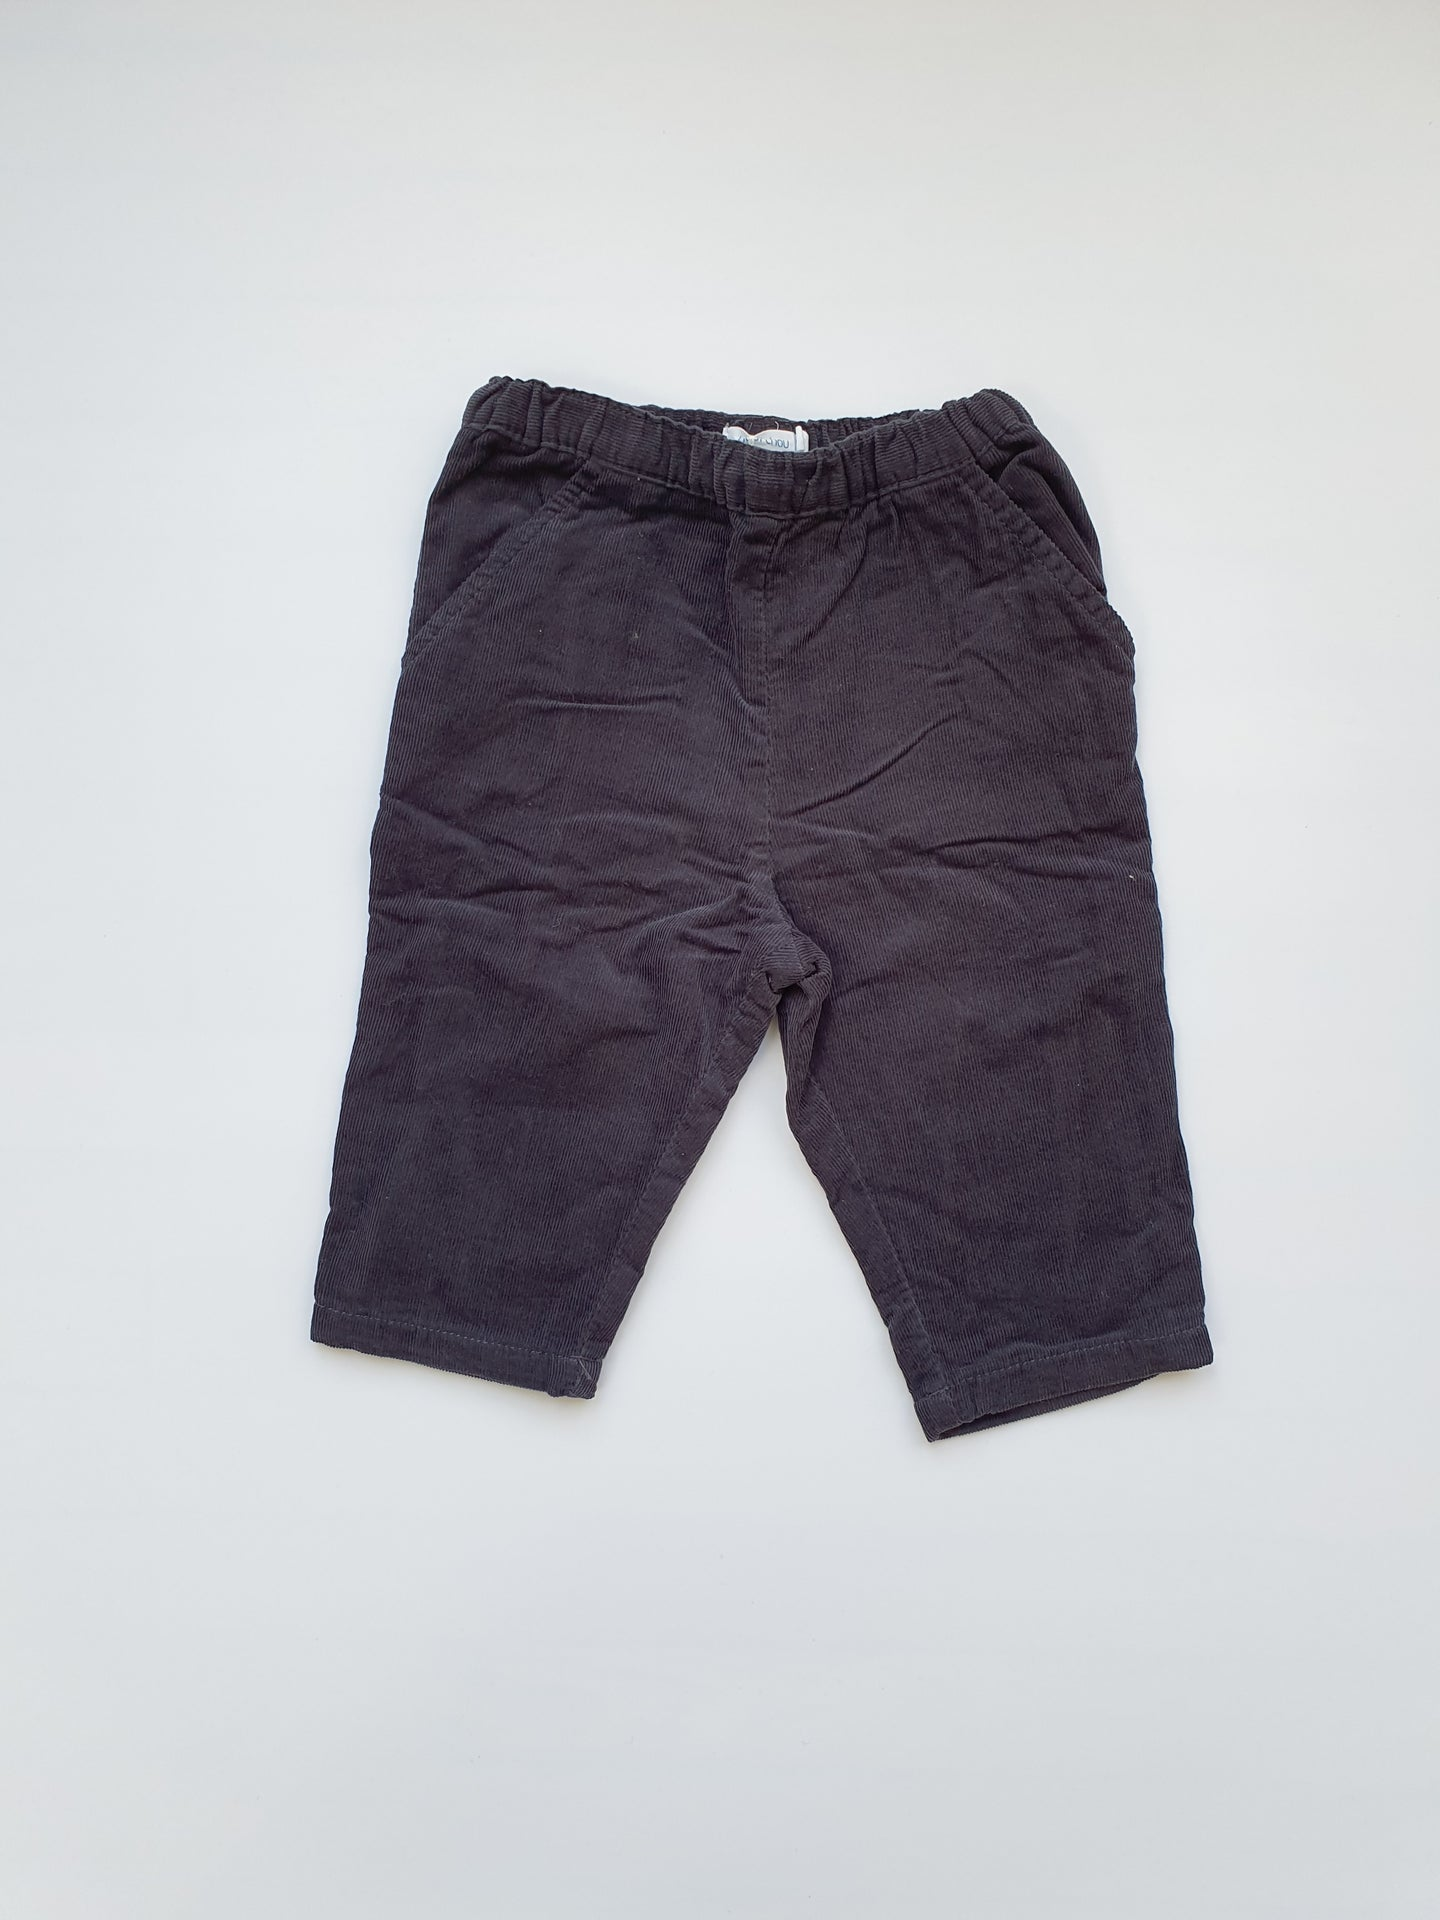 BOUTCHOU boy or girl trousers 6m